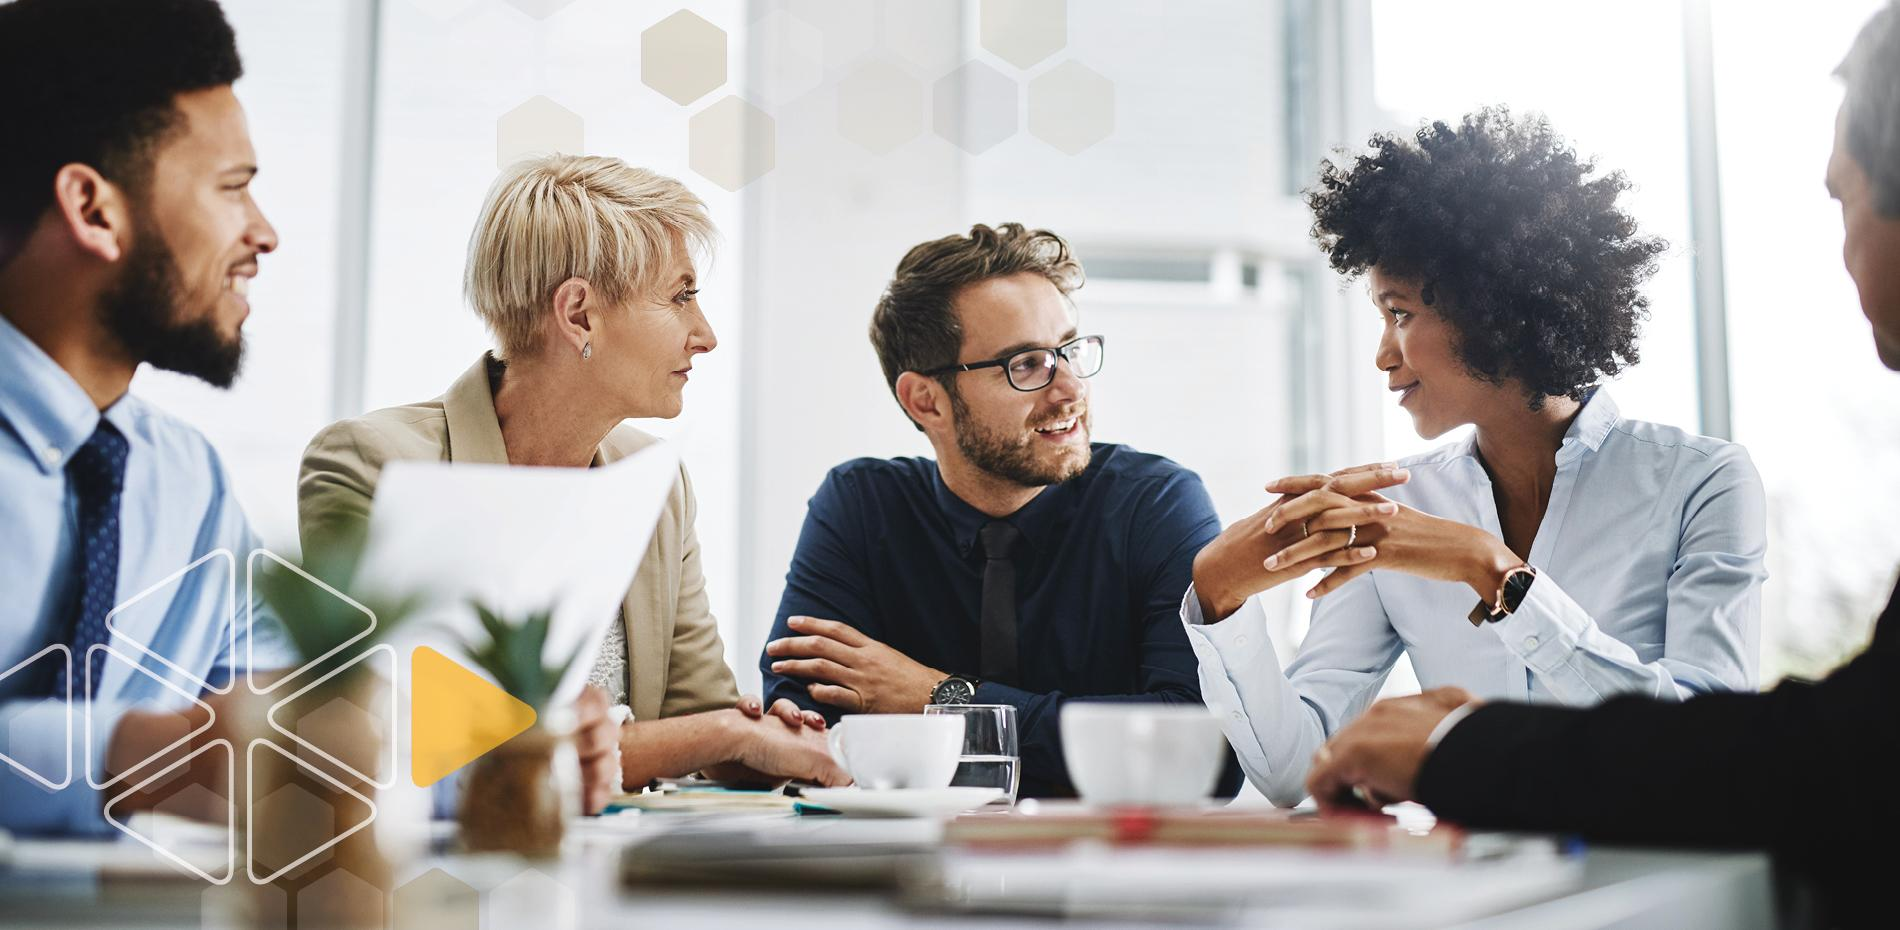 Employees meeting around table to discuss workplace values